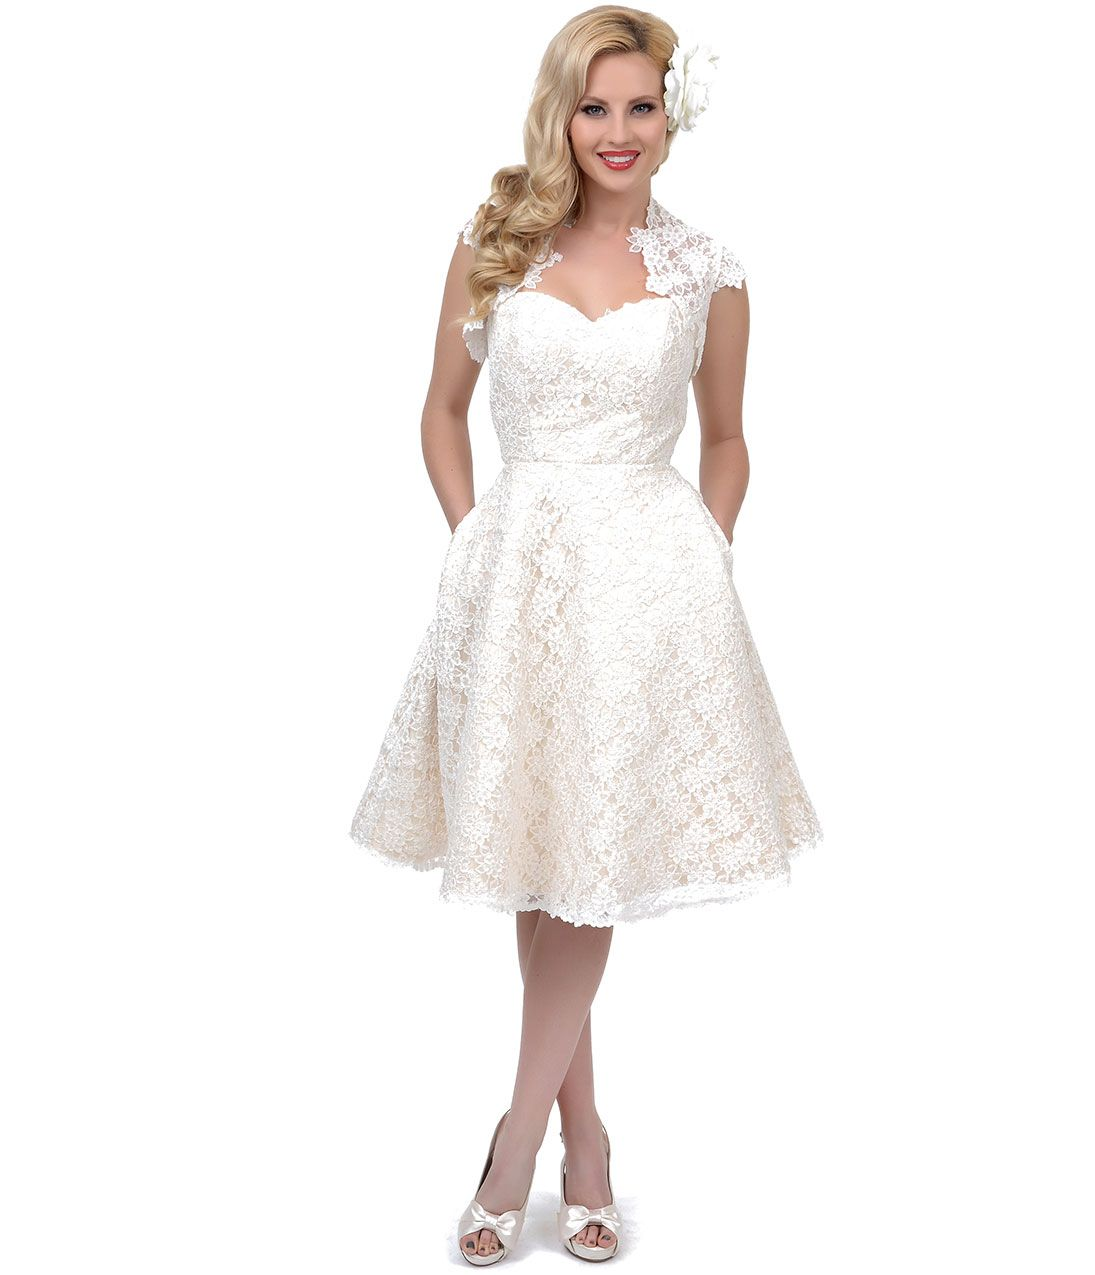 f732fcf822 White prom dress 1950s style - Embroidered Lace Tea Length Jaqueline Dress  with Jacket